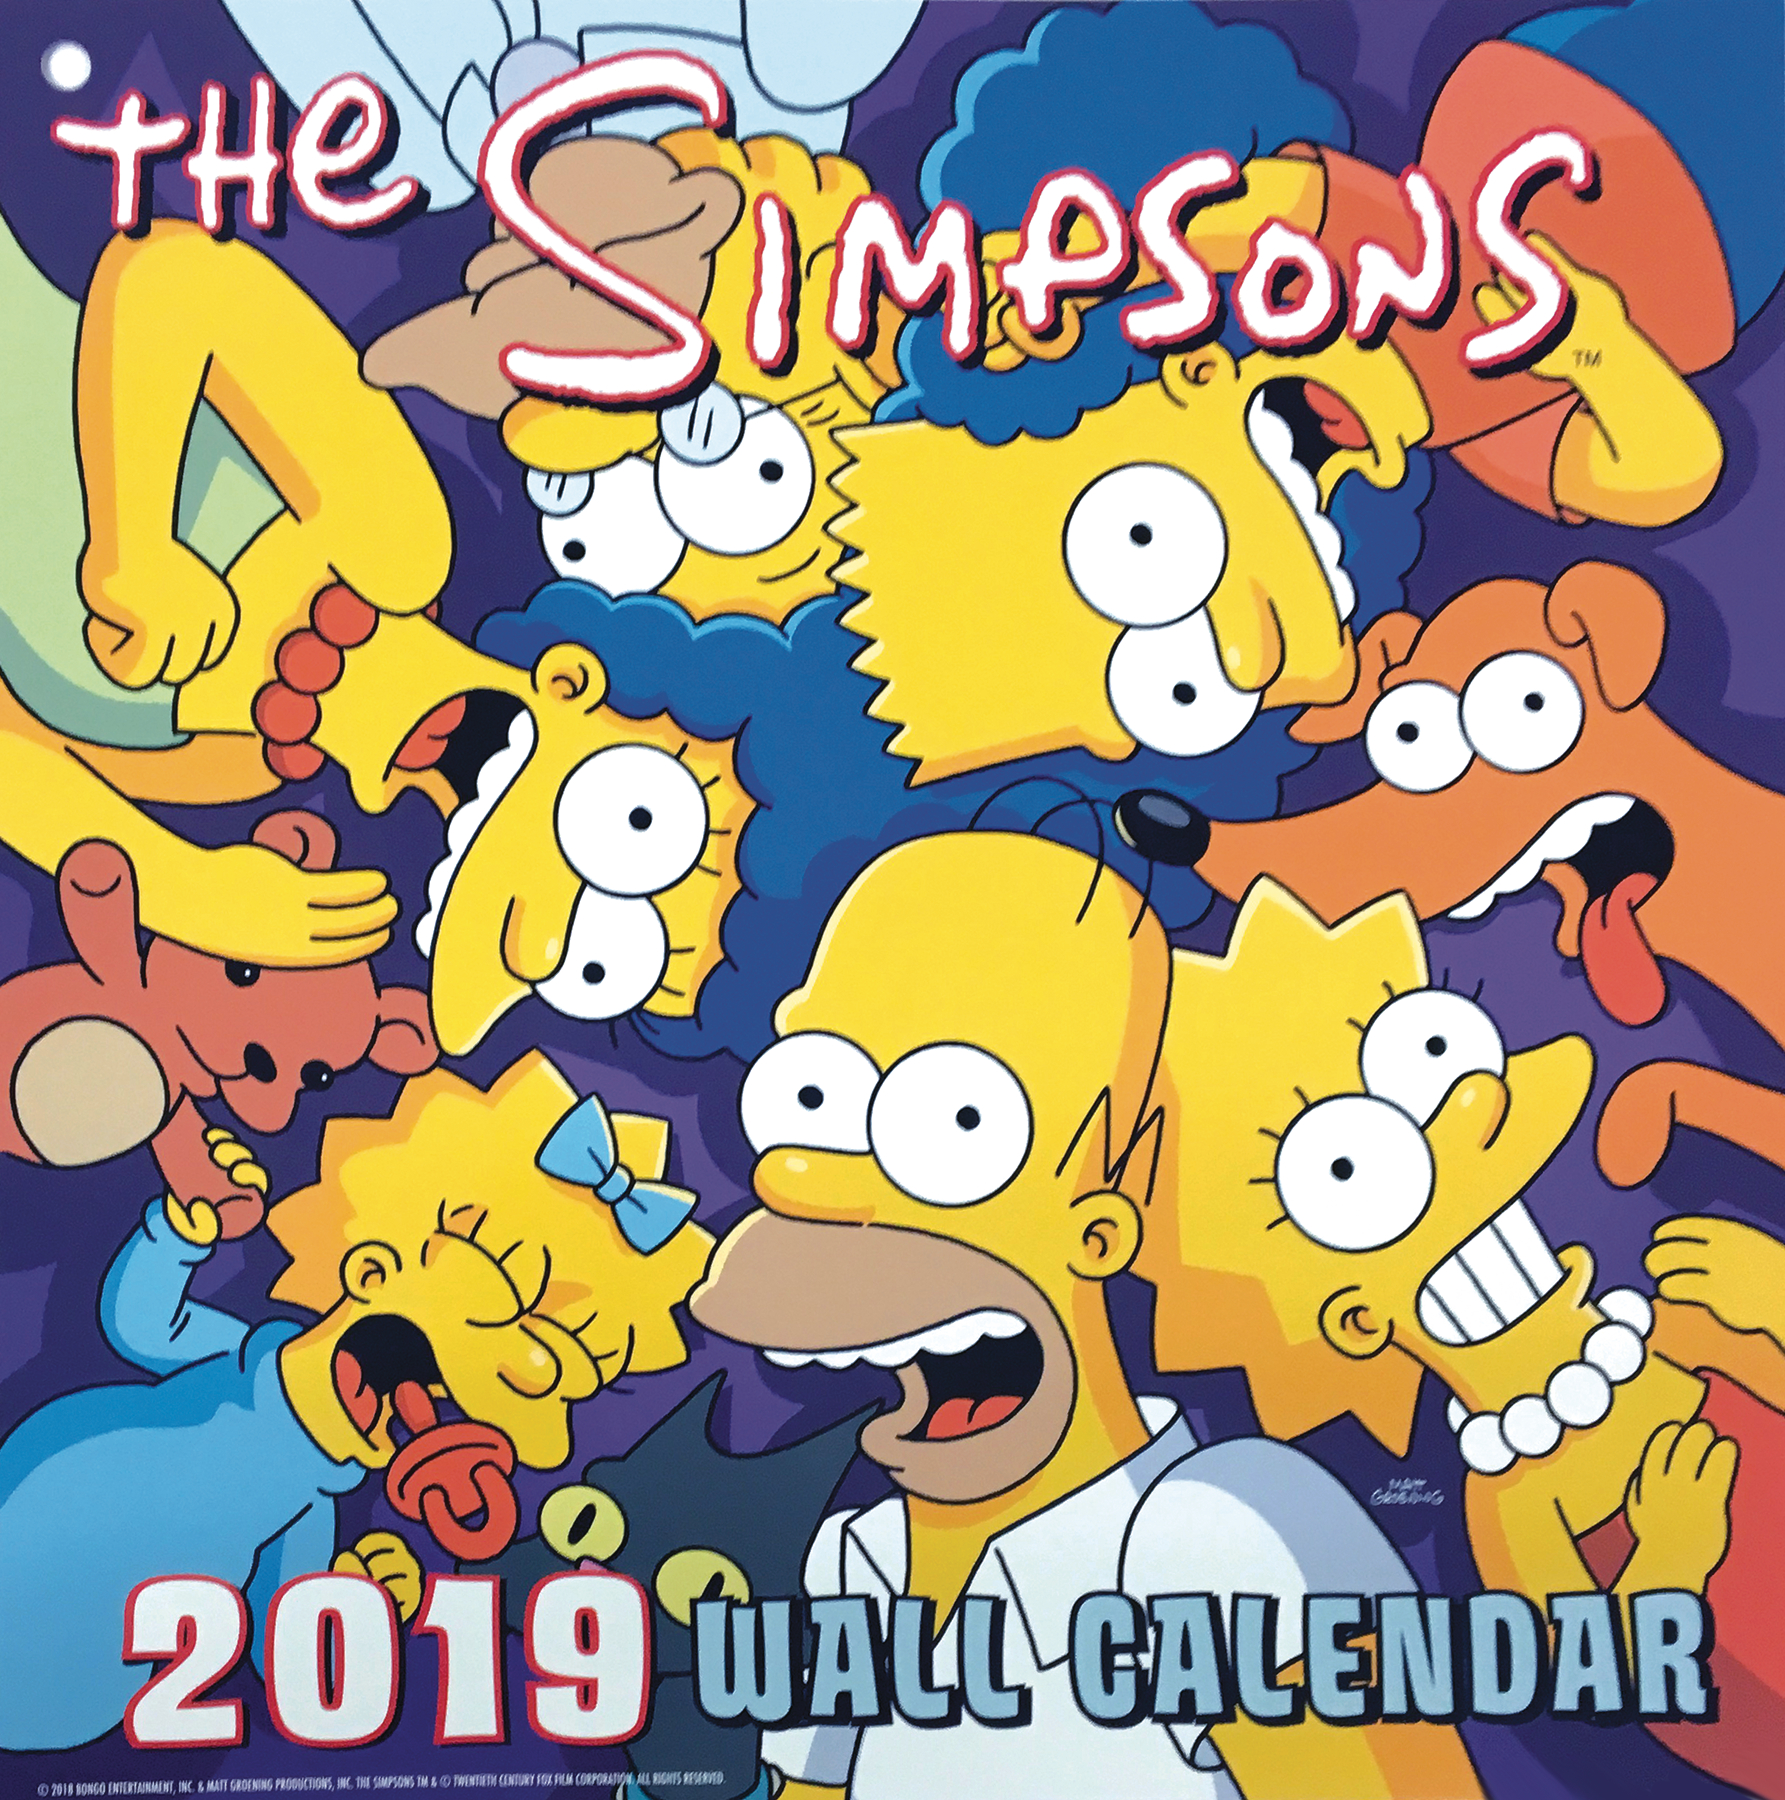 APR182120 - SIMPSONS 2019 WALL CAL - Previews World